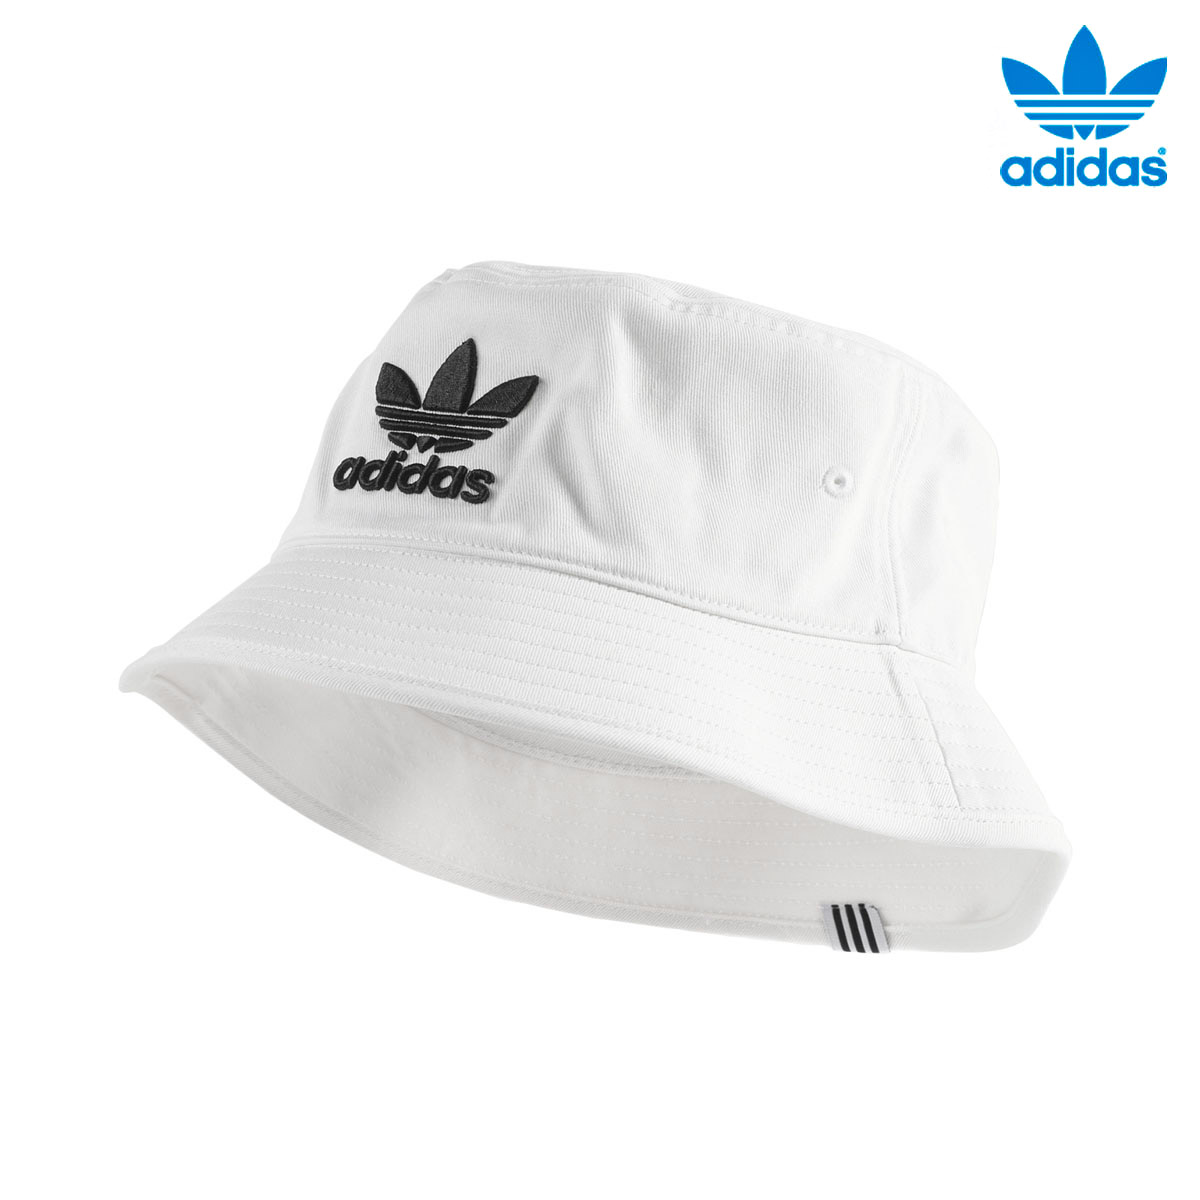 adidas Originals BUCKET HAT AC (Adidas original Suva blanket hat AC) WHITE  18SS-I 322677248f4